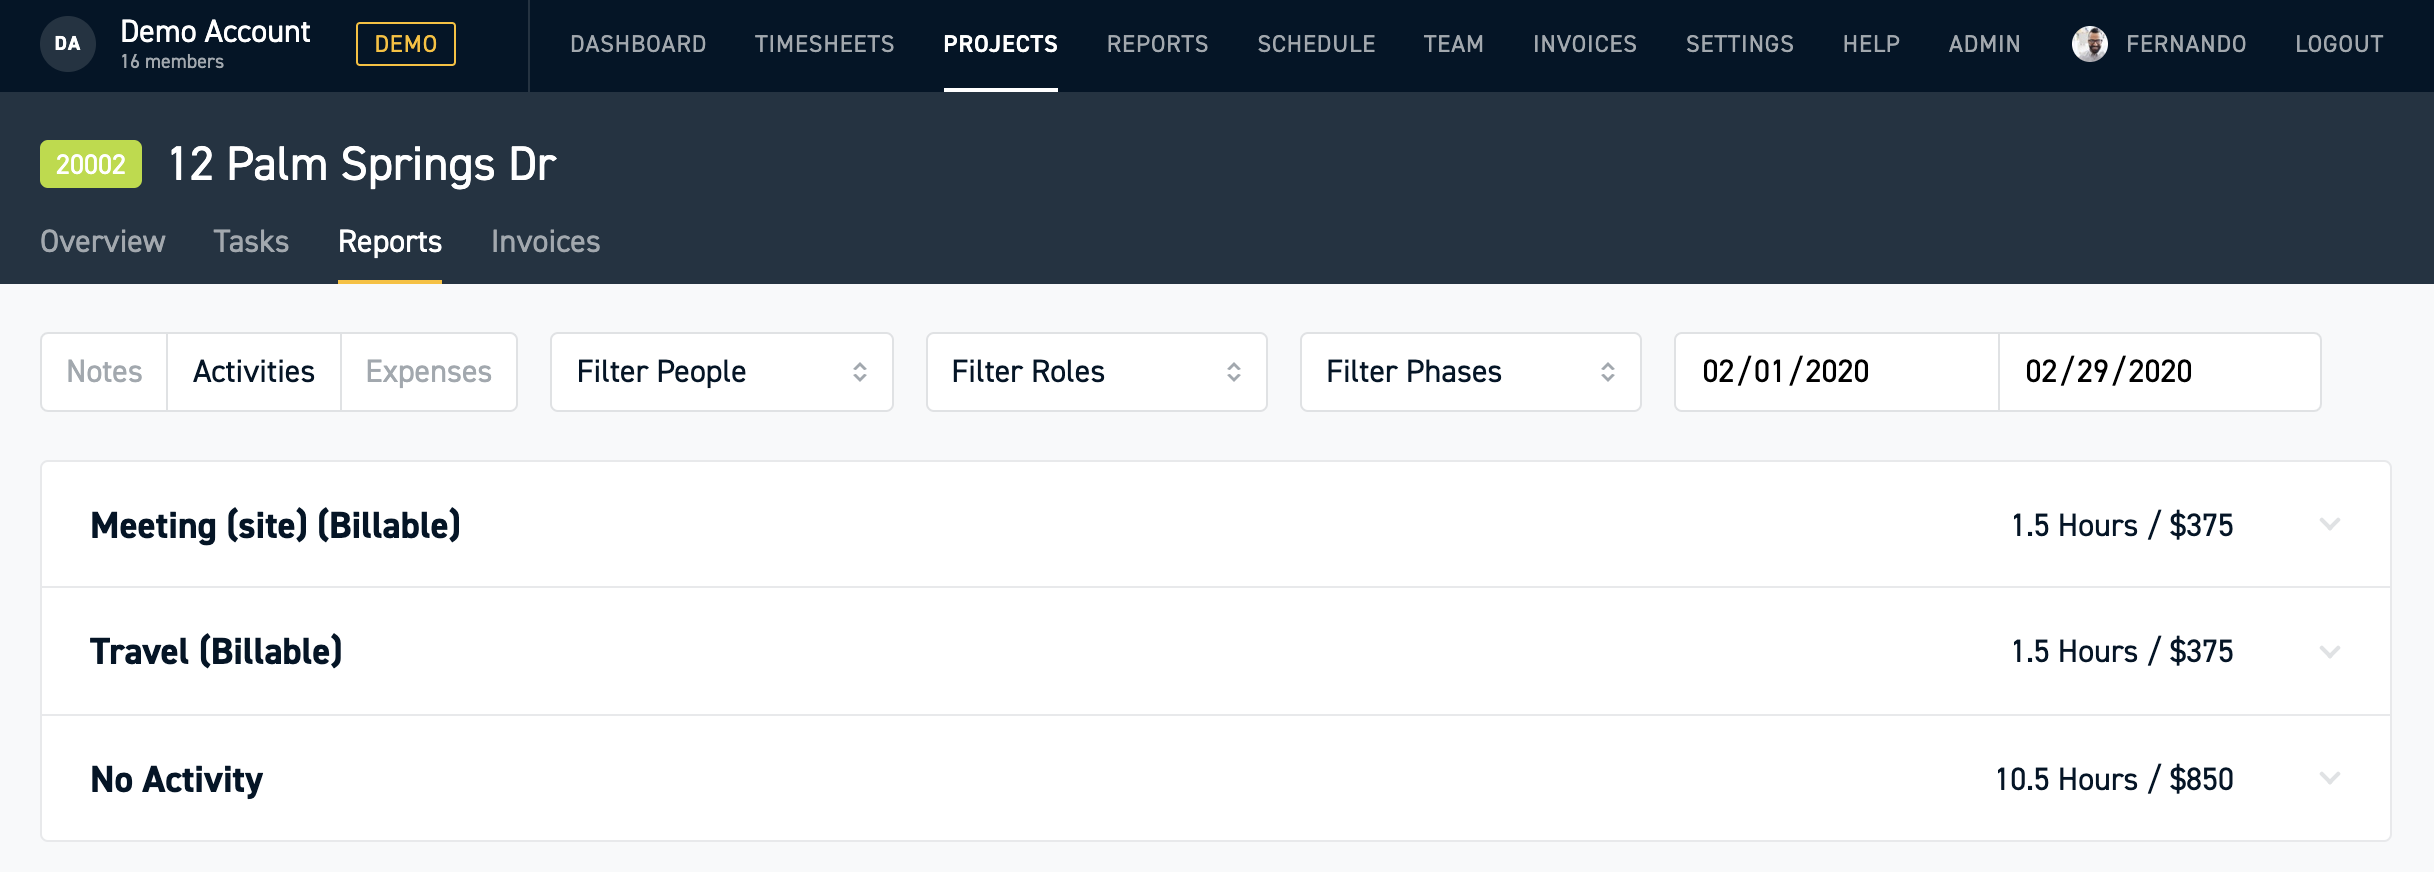 Display Uncategorized Activities as Project Reports